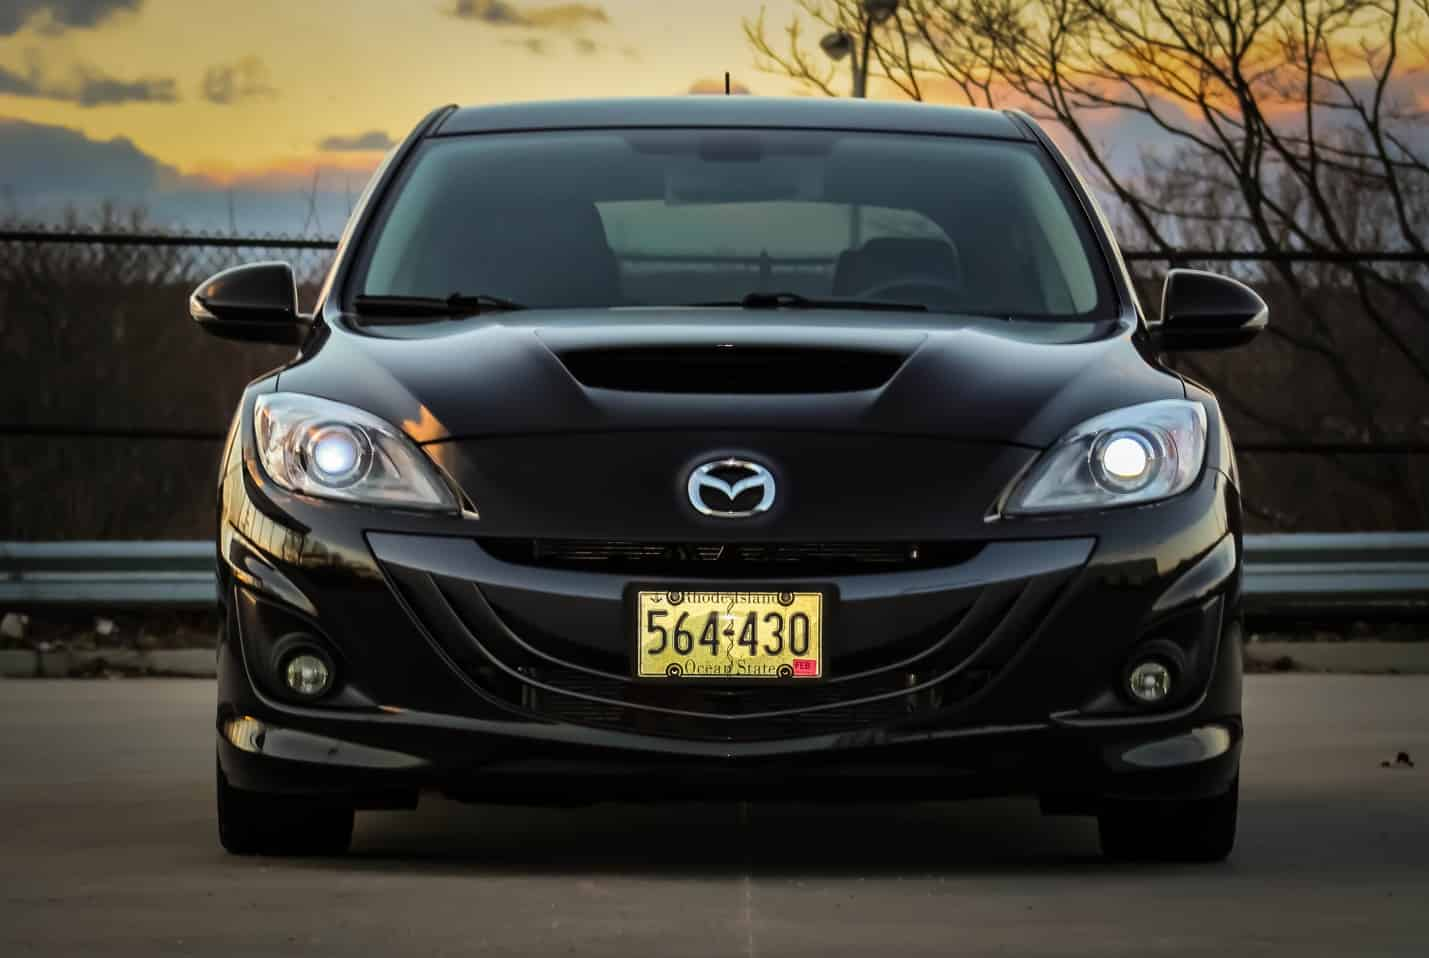 Joe-Perry-2011-Mazdaspeed-3-CorkSport-Featured-Mazda-Speed-3-Car-Rear-Grinning-Face